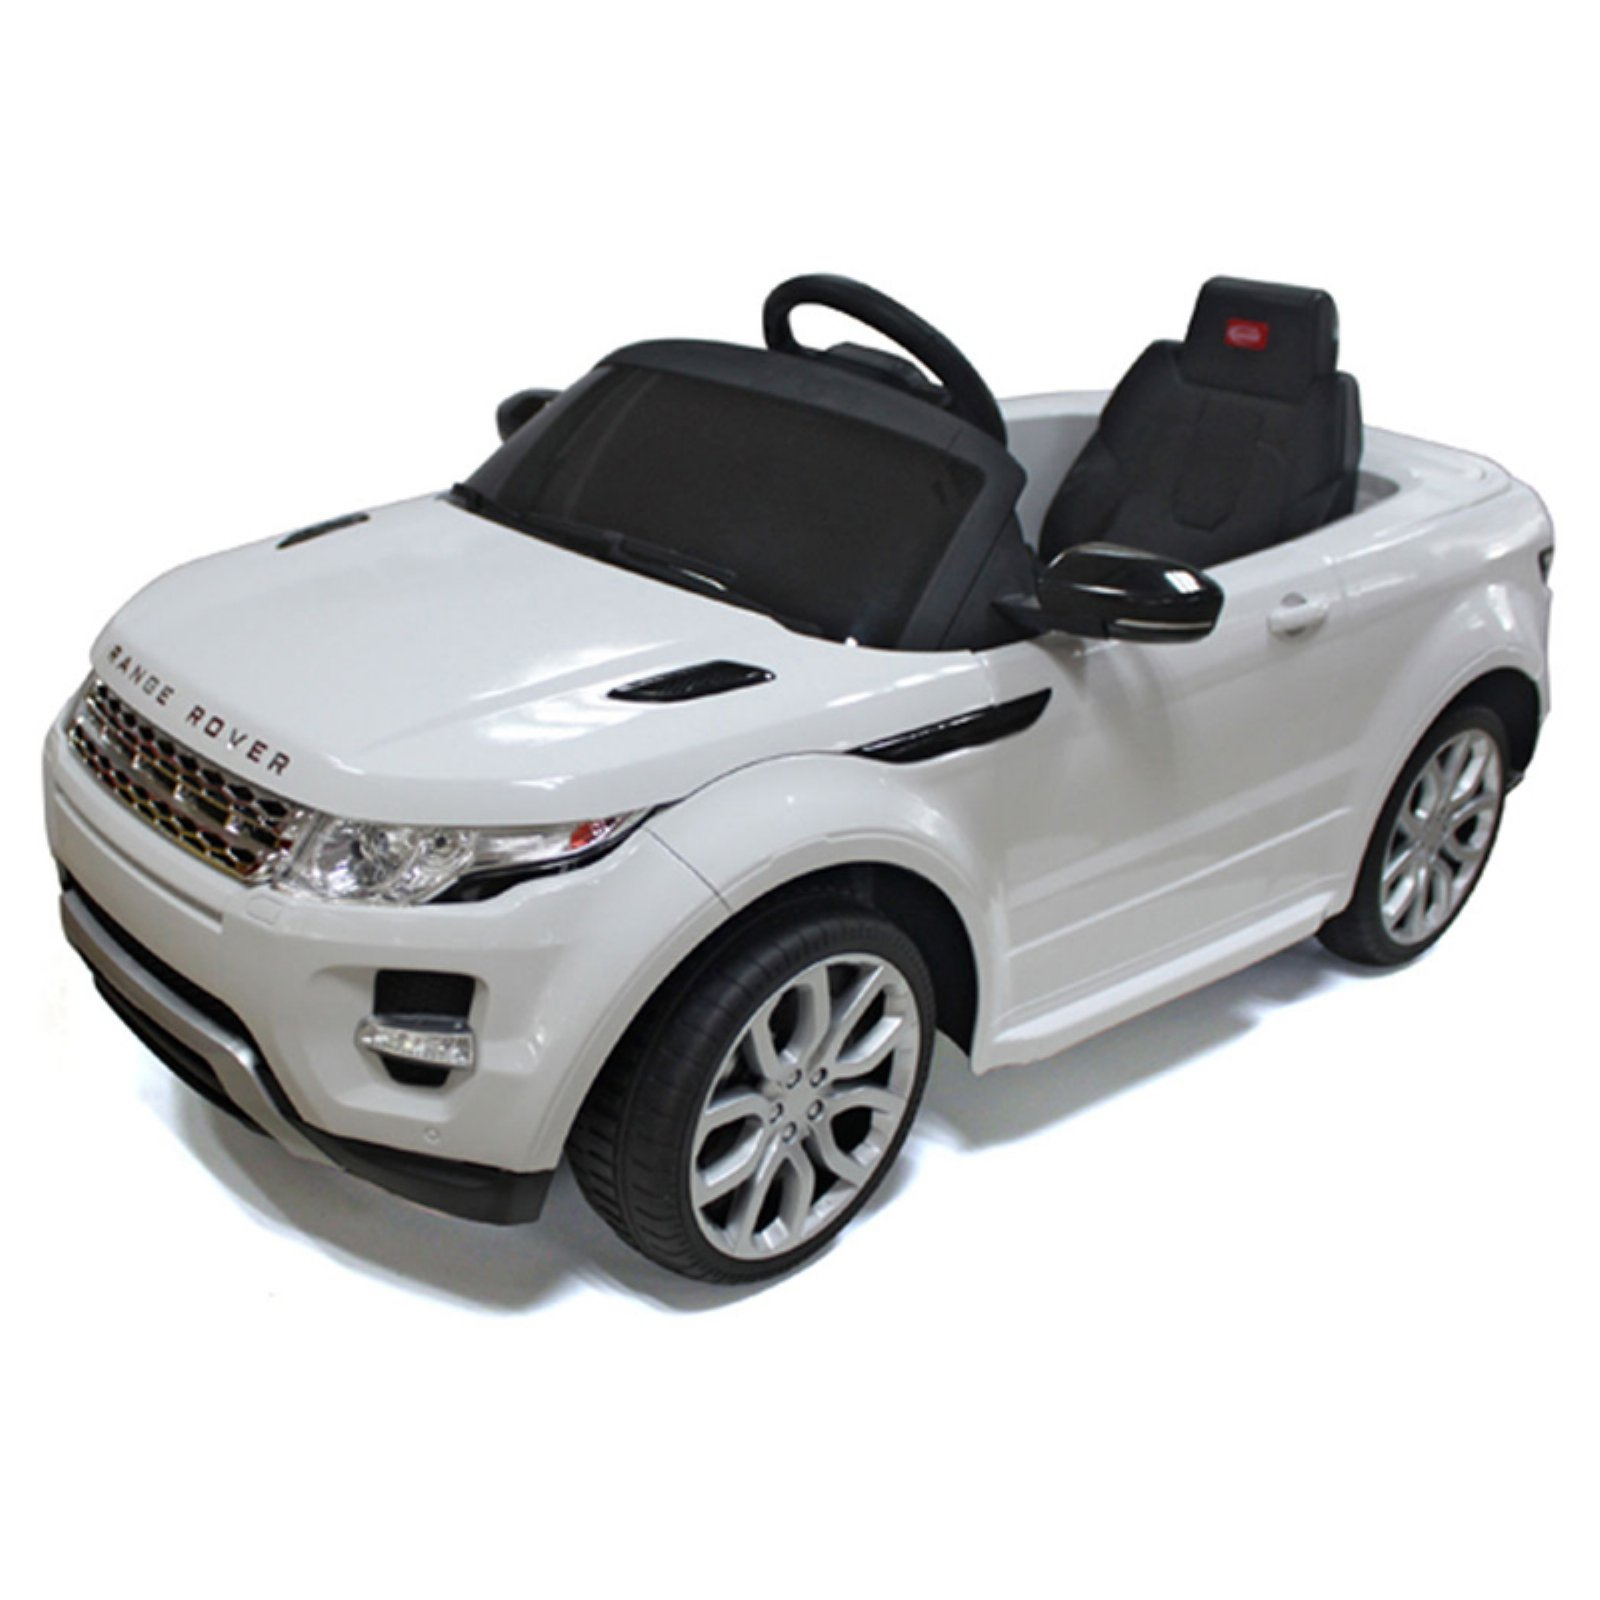 Rastar Land Rover Evoque Battery Powered Riding Toy